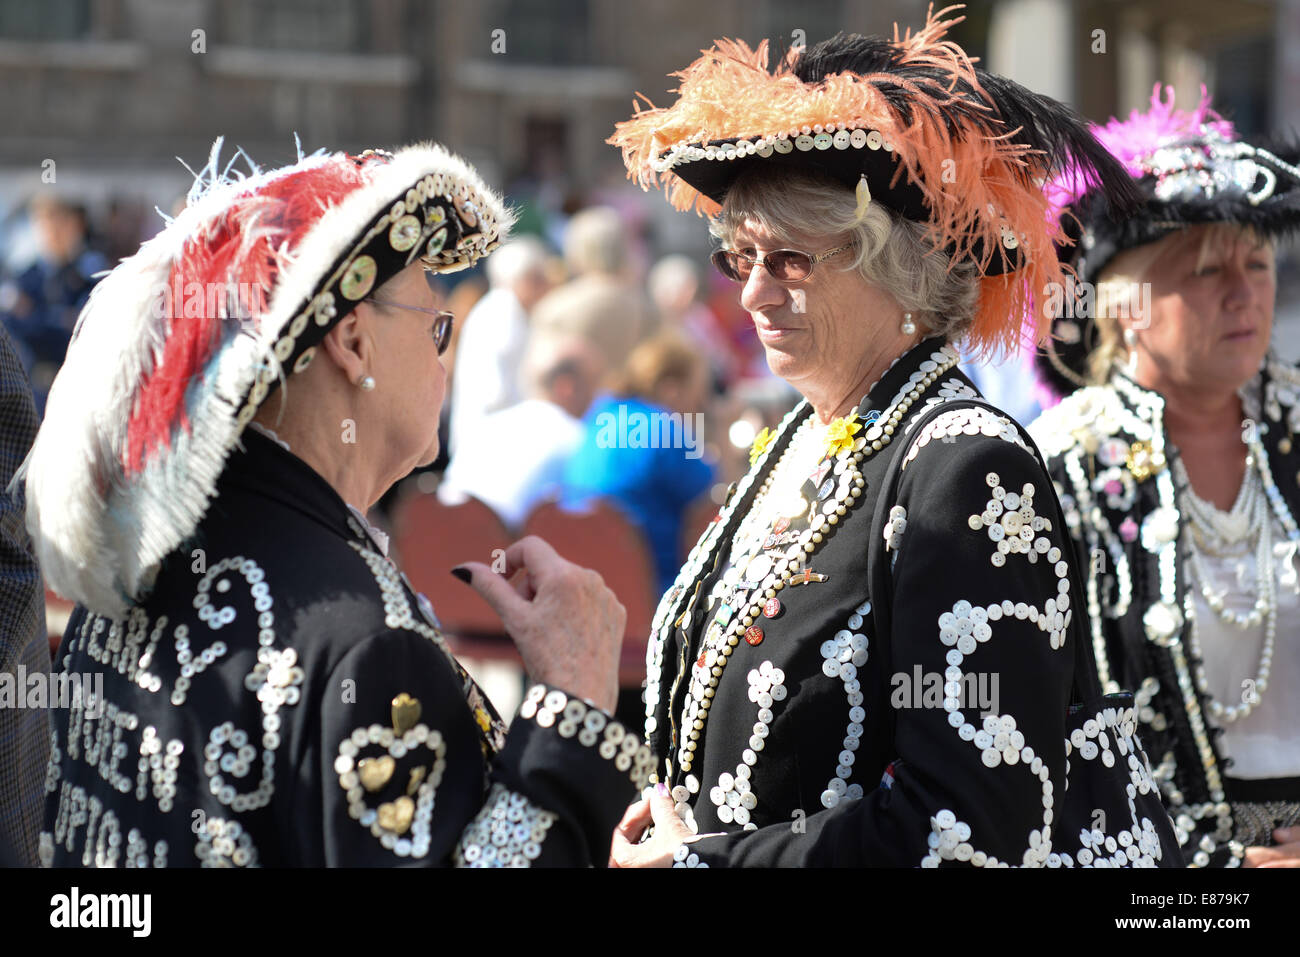 Pearly Kings and Queens at the annual Harvest Festival, City of London, UK - Stock Image